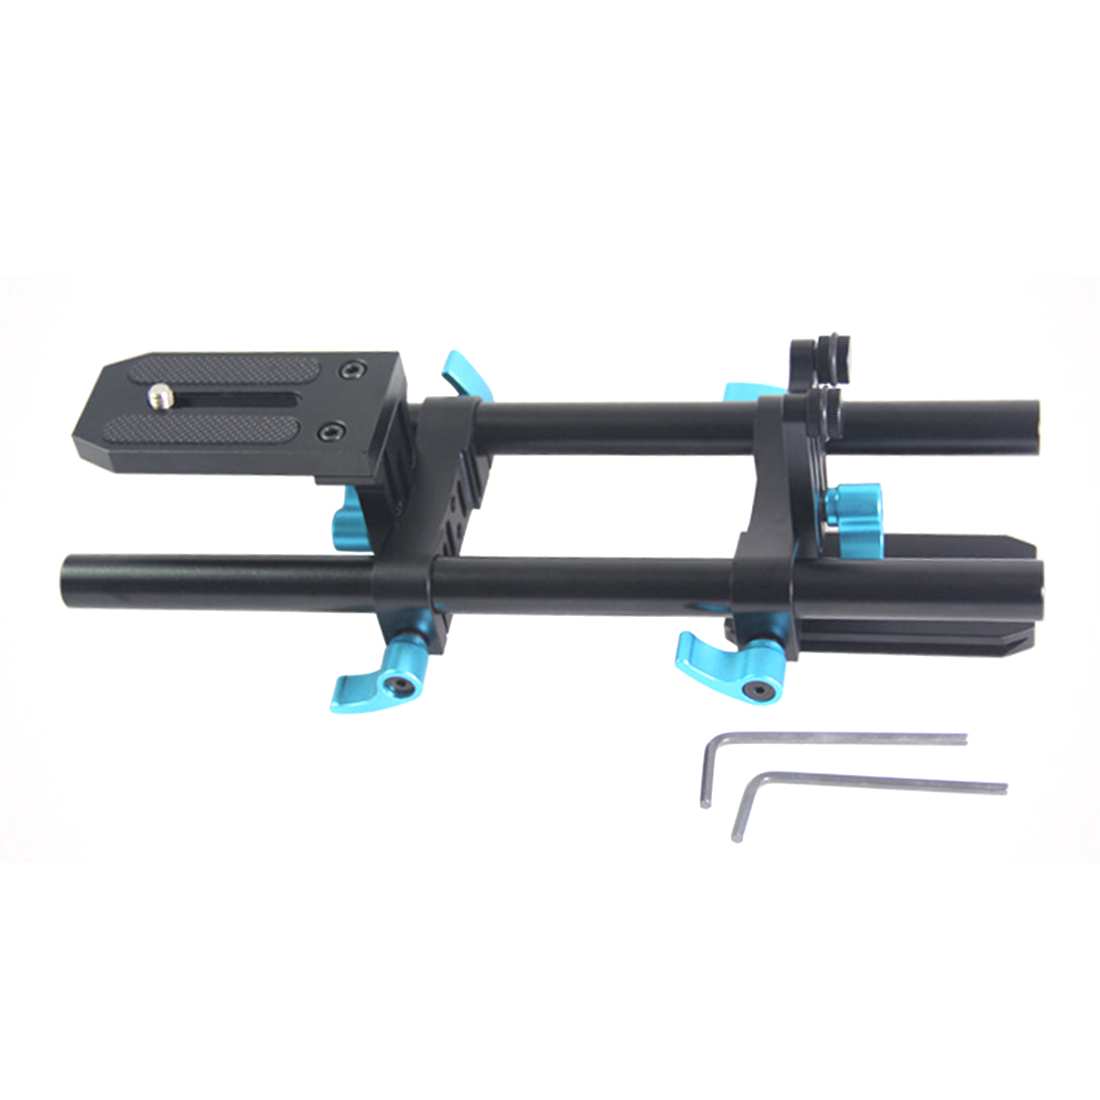 15mm Aluminum Alloy Rail Rod Support System DSLR Camera Track Rail Slider Baseplate & 1/4 Screw Quick Release Plate